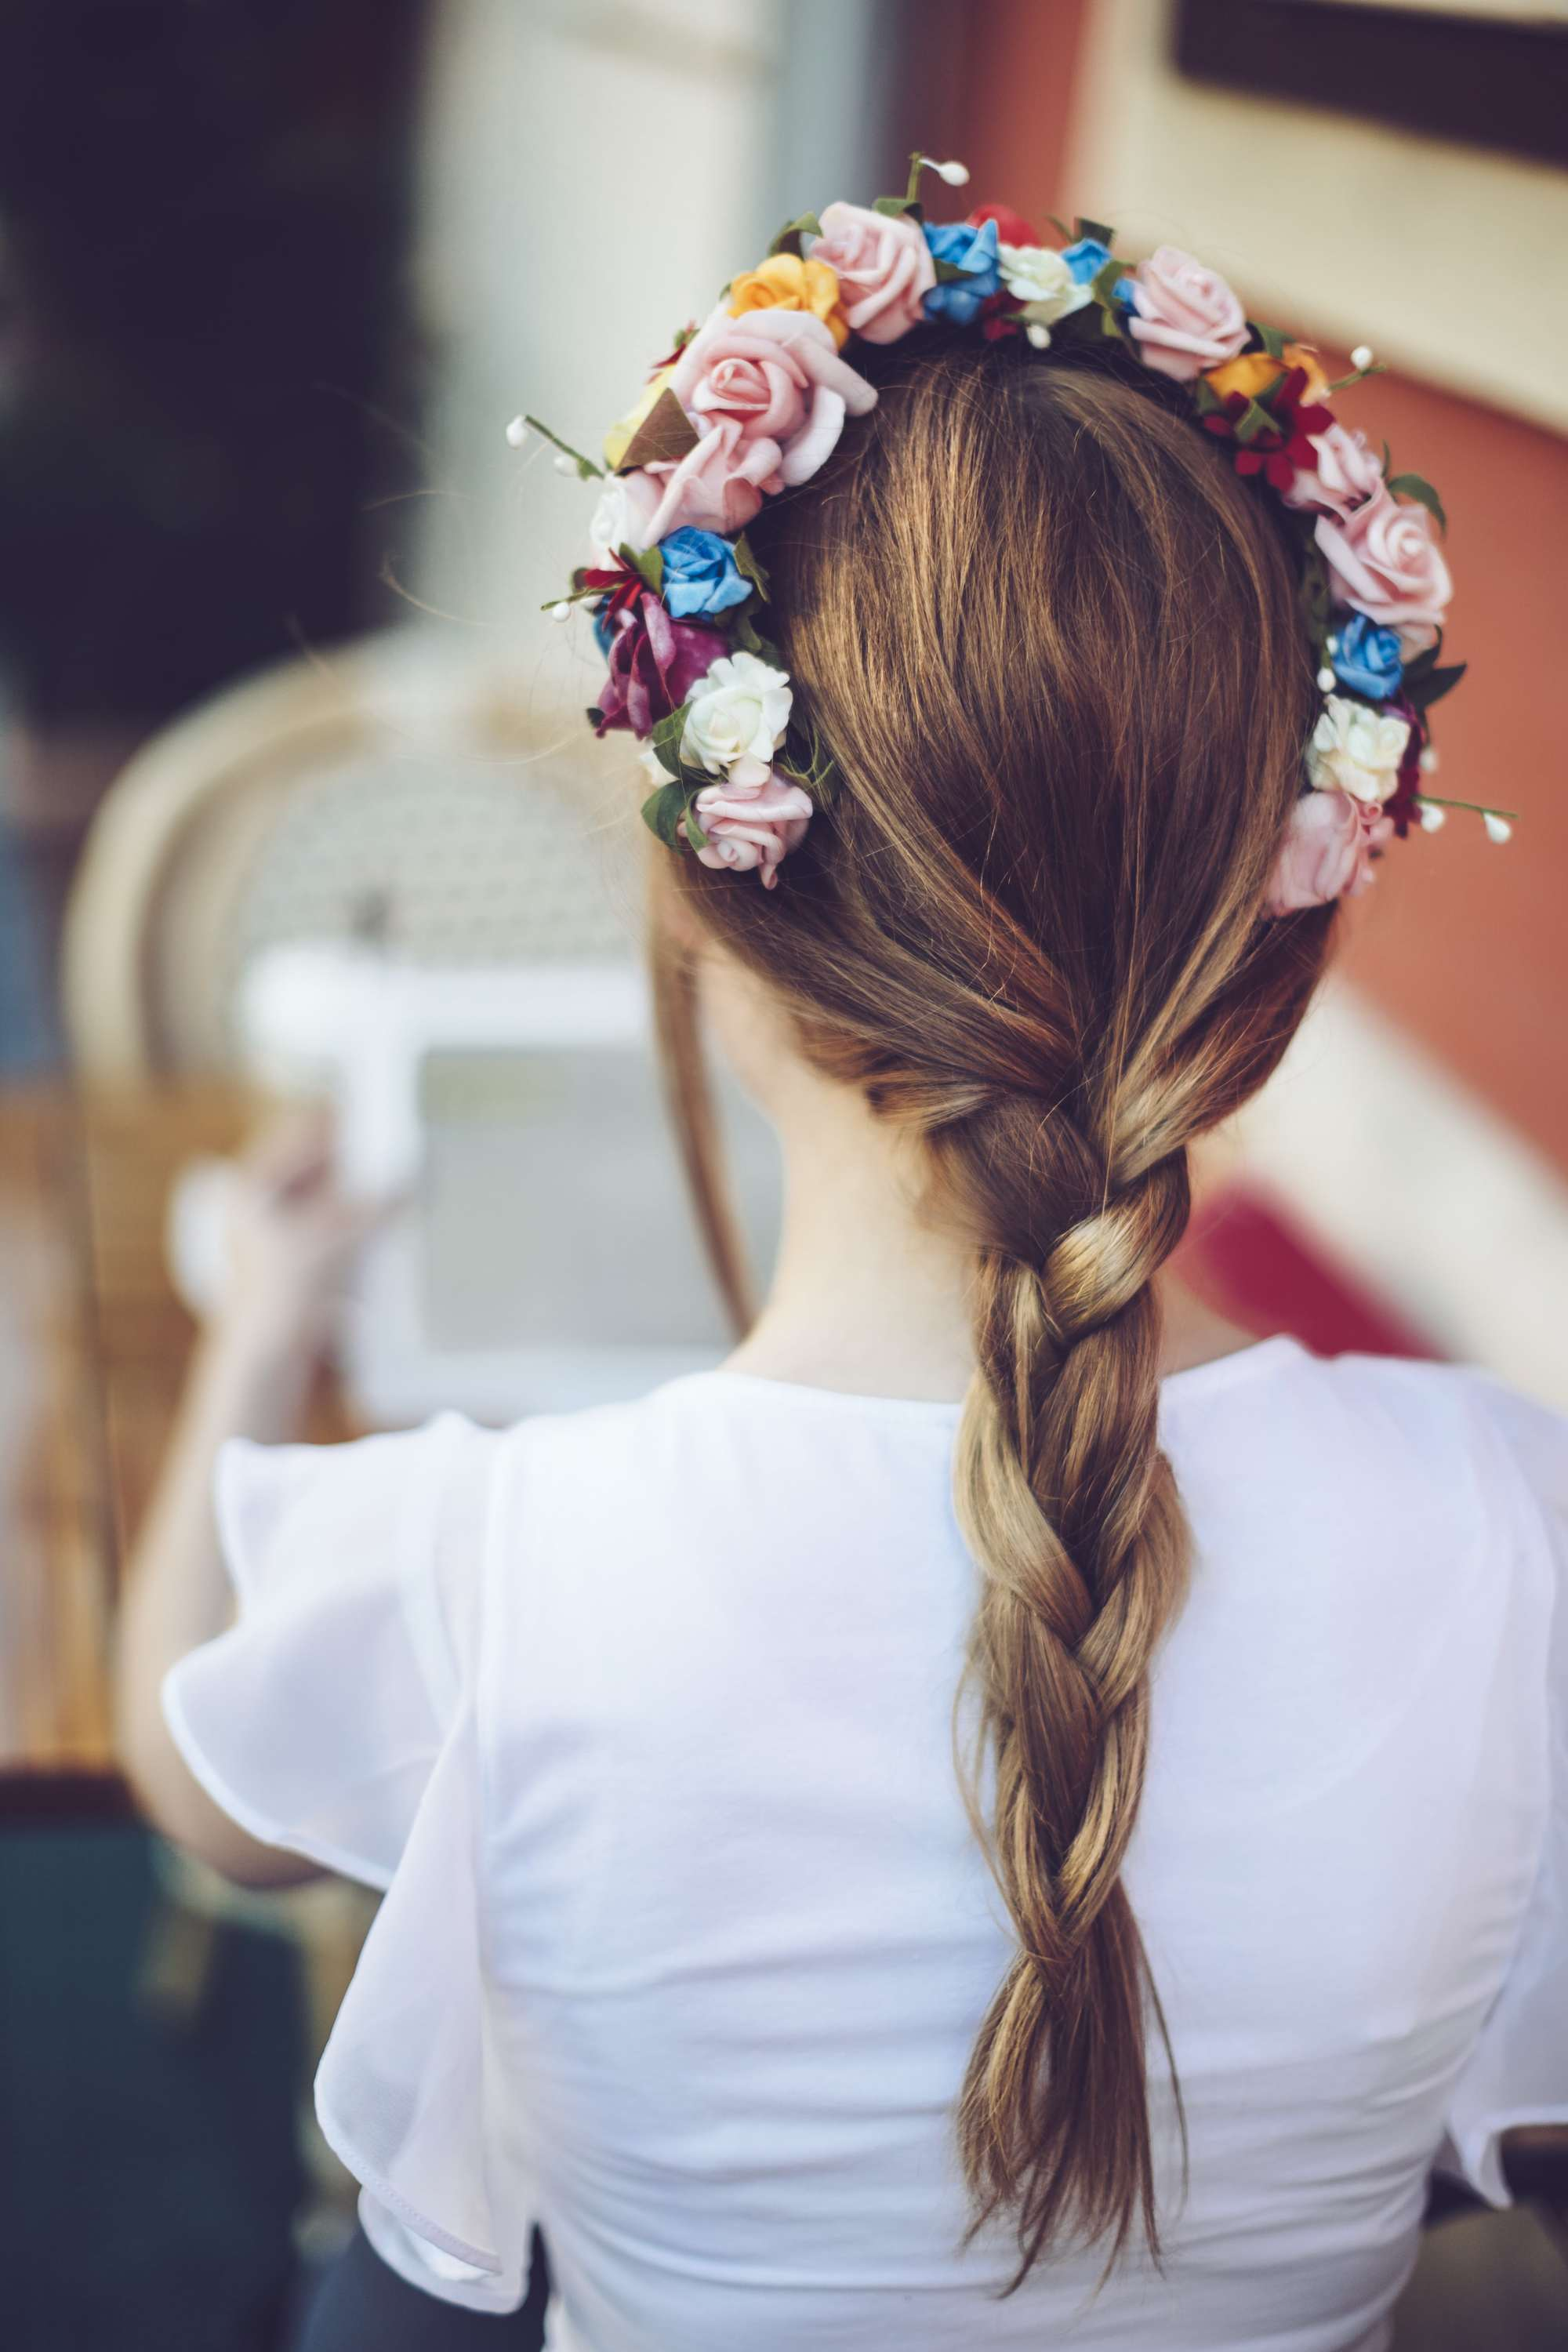 Braided Hairstyles Practice These Stylist Plaits At Home